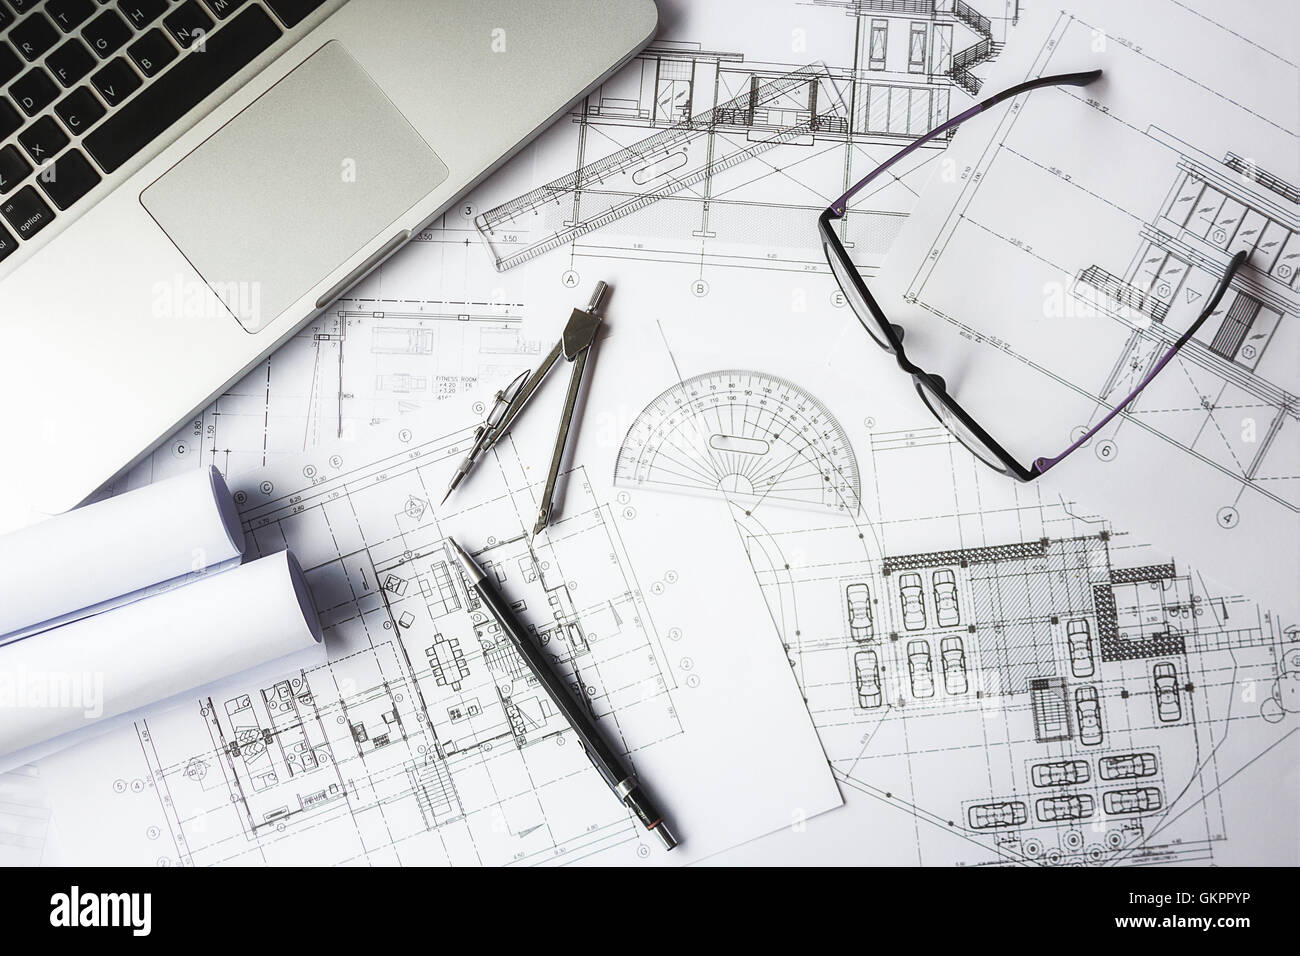 Architect architecture blueprint business businessman candid architect architecture blueprint business businessman candid casual coffee malvernweather Image collections